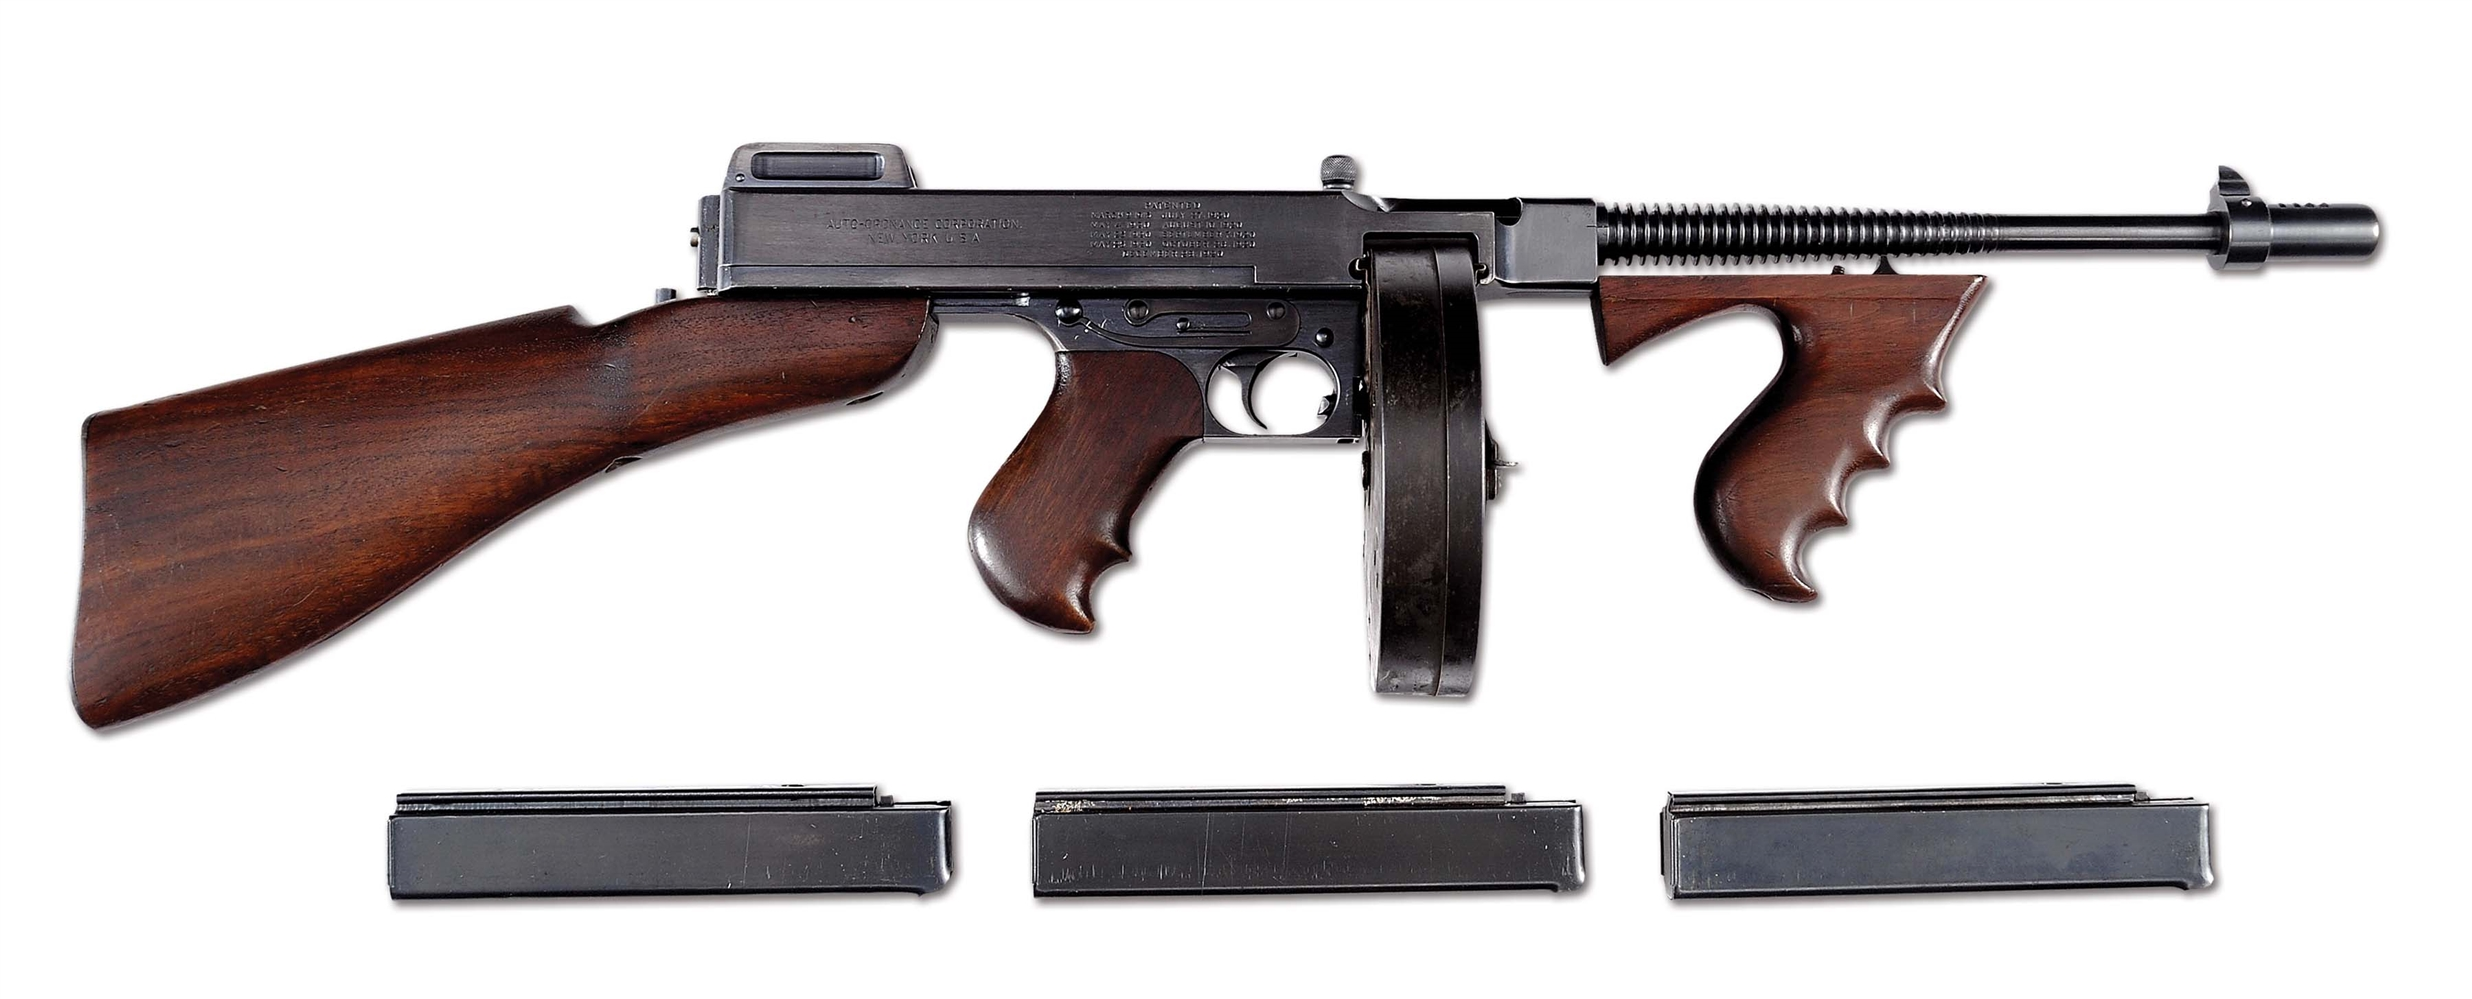 (N) DESIRABLE COLT U.S. NAVY 21/28 OVERSTAMP THOMPSON MACHINE GUN WITH POLICE MARKINGS (CURIO & RELIC).